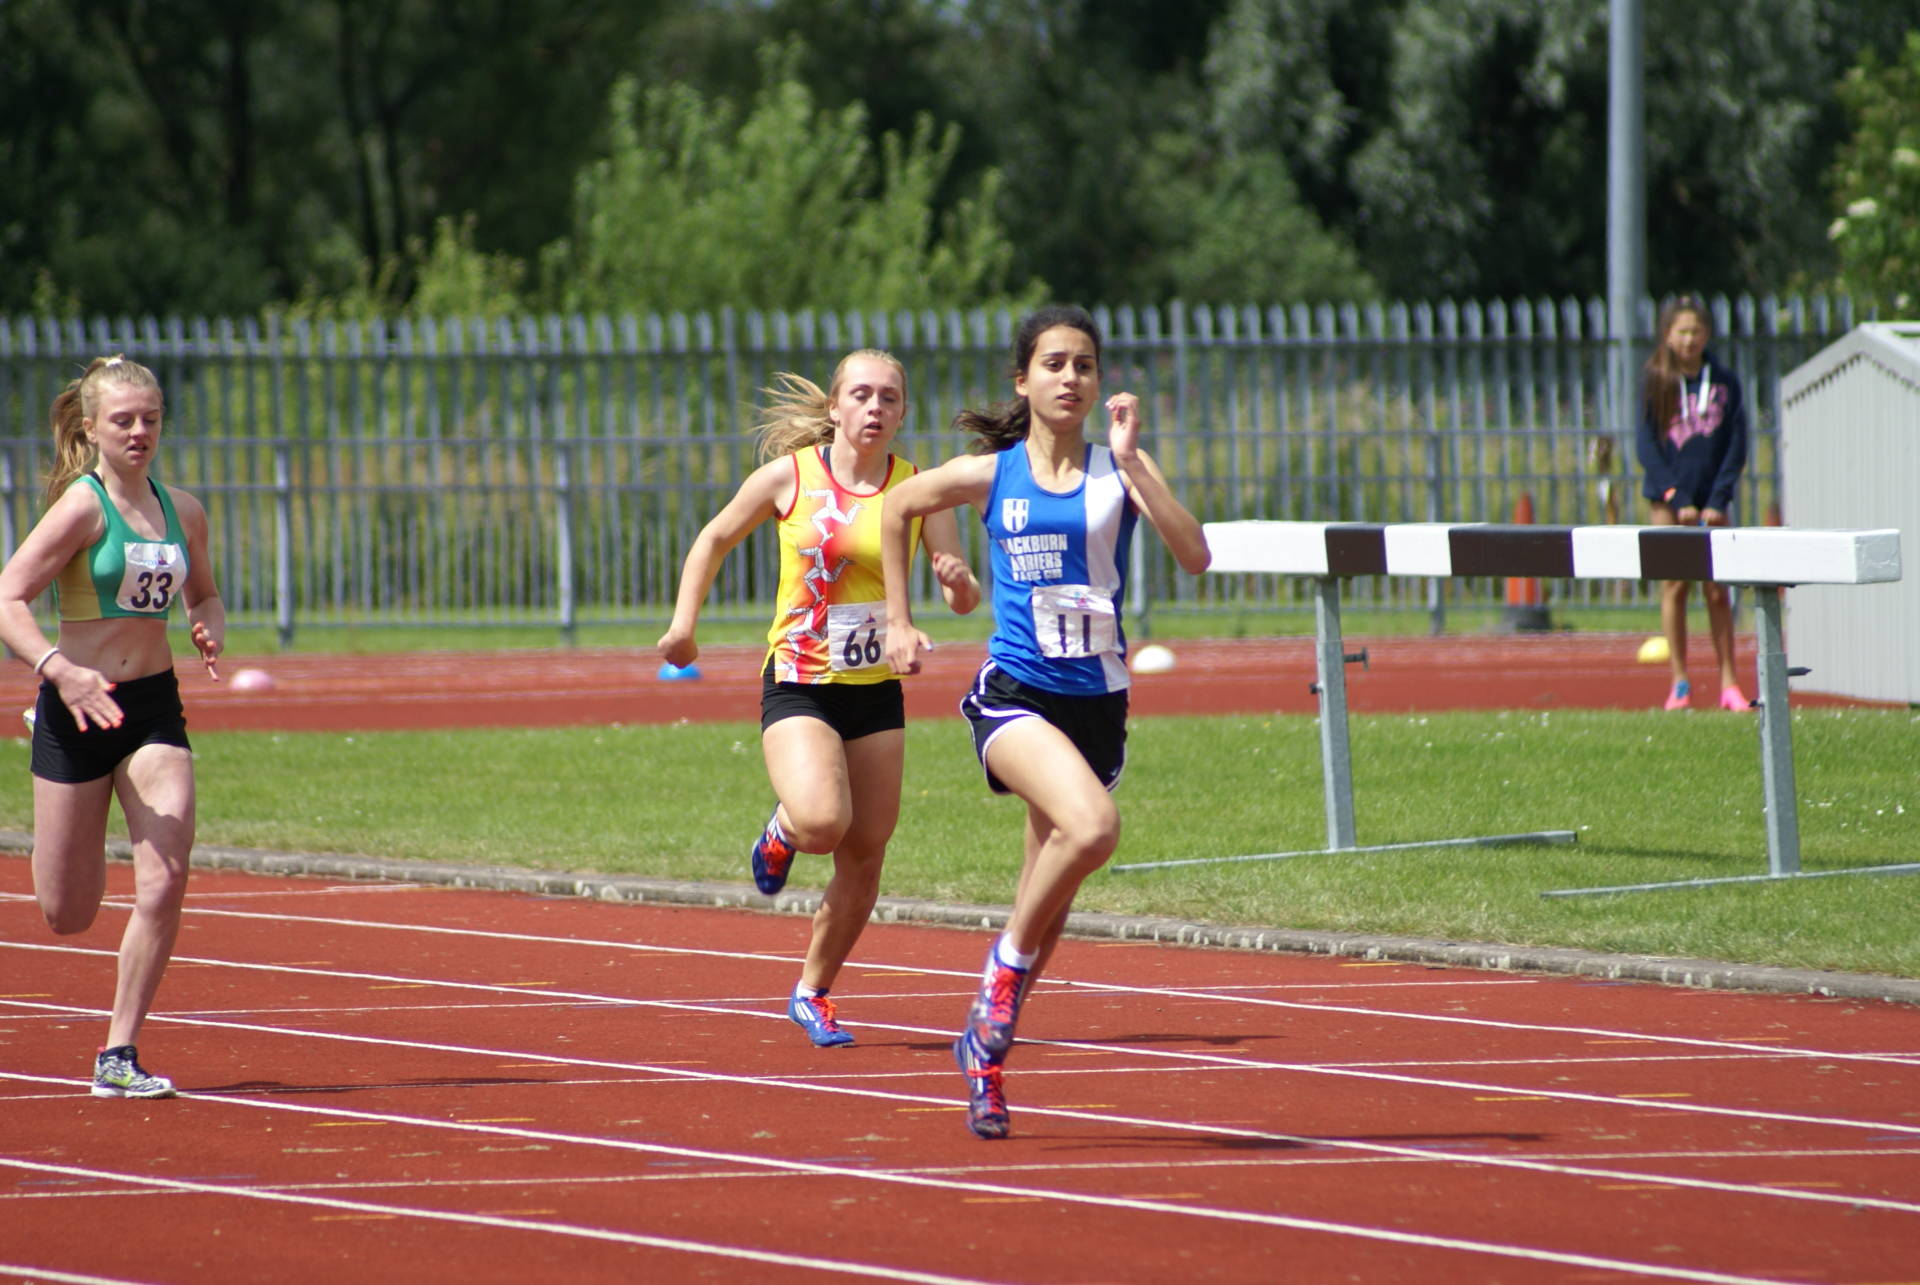 Promotion for the Harriers U13 and U15 Teams to Division One of the YDL with 24 new PB's at the final fixture